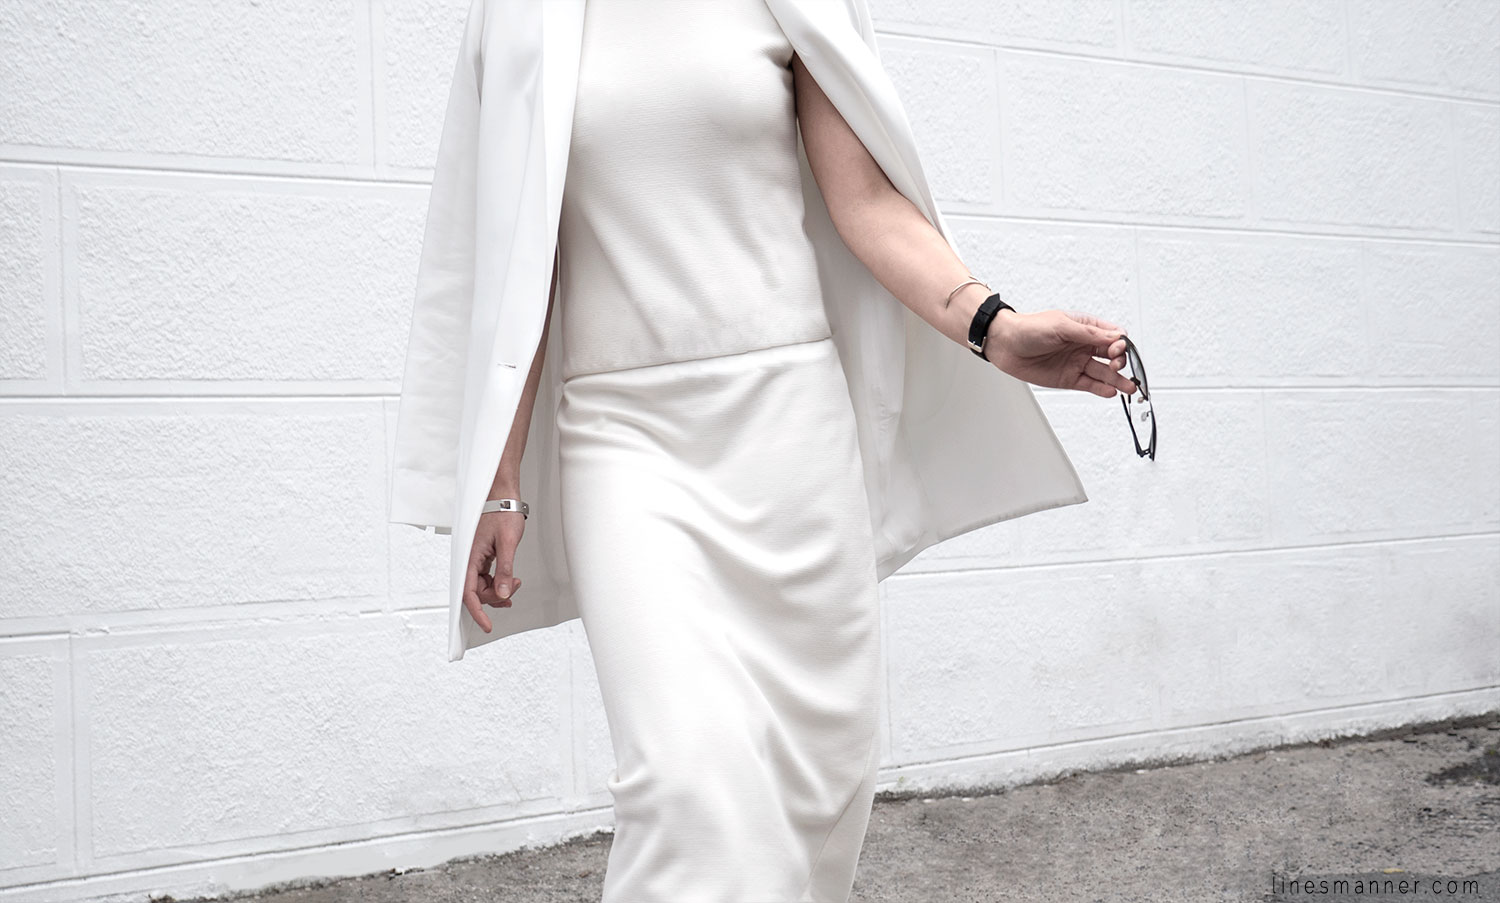 Lines-Manner-Whiteout-Fashion-Outfit-White-Bright-Simplicity-Elegance-Effortless-Anecdote-Degree_Seven-Quality-Summer-Minimal-Essential-Modern-Sleek-Details-3